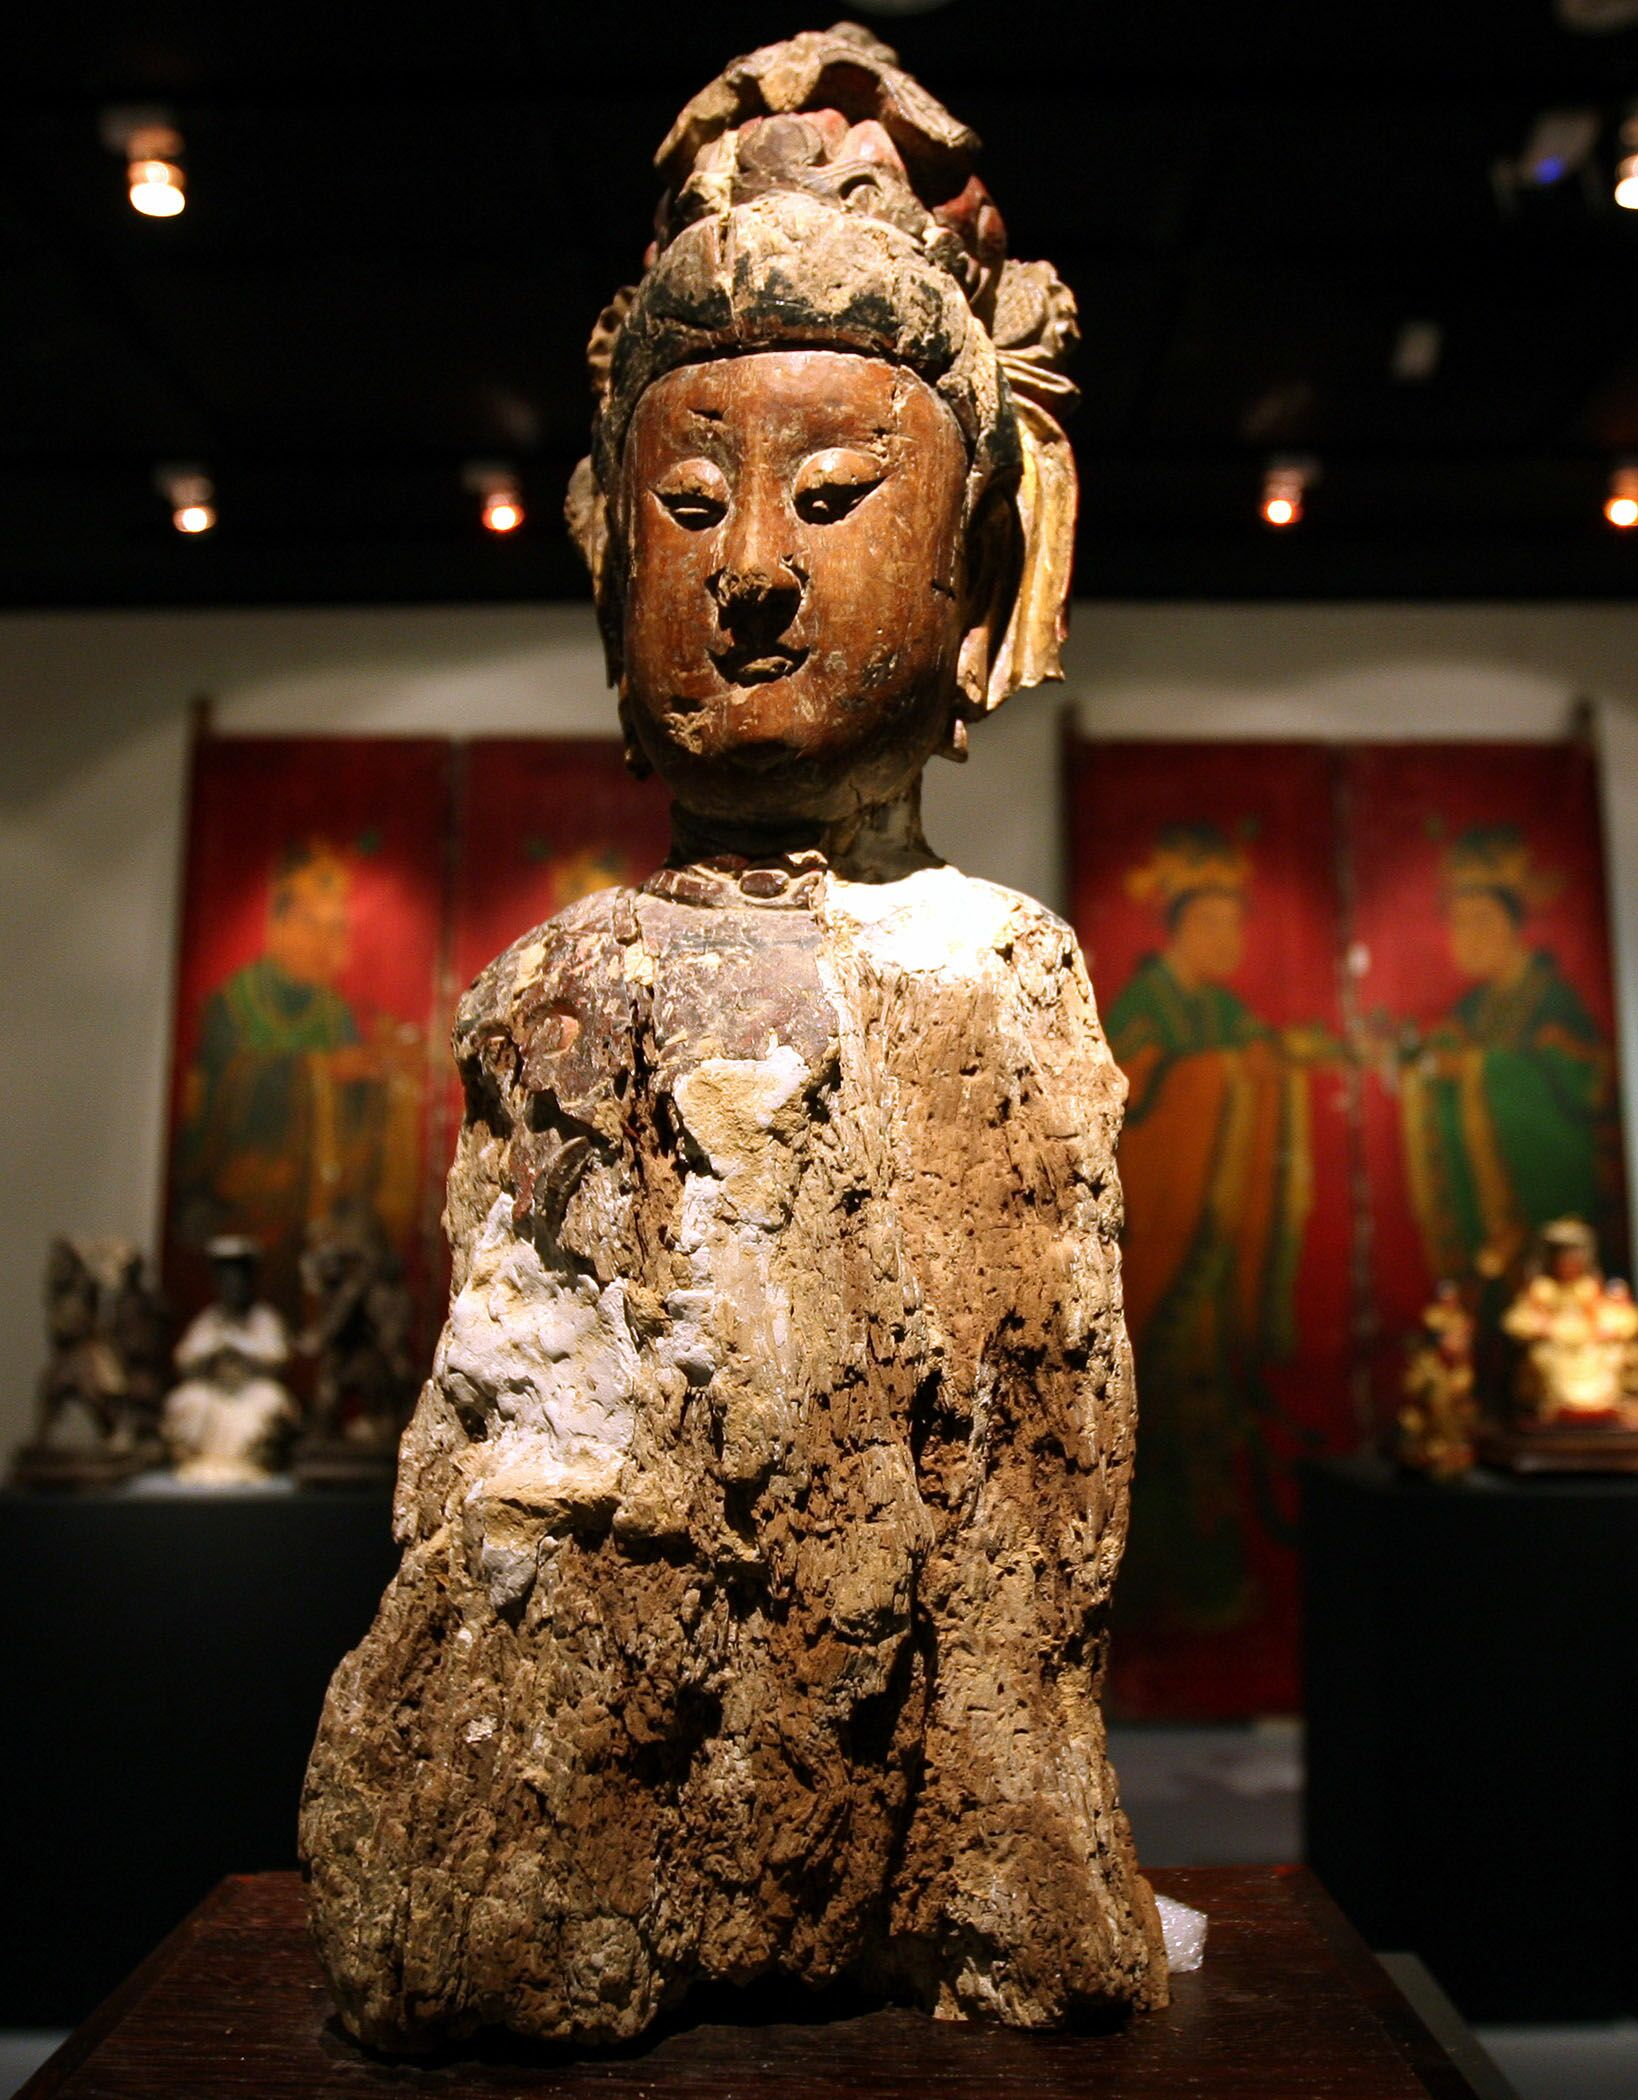 The Ma Zu josses on display at the National Museum of History includes one that dates back to 700 to 800 years ago.